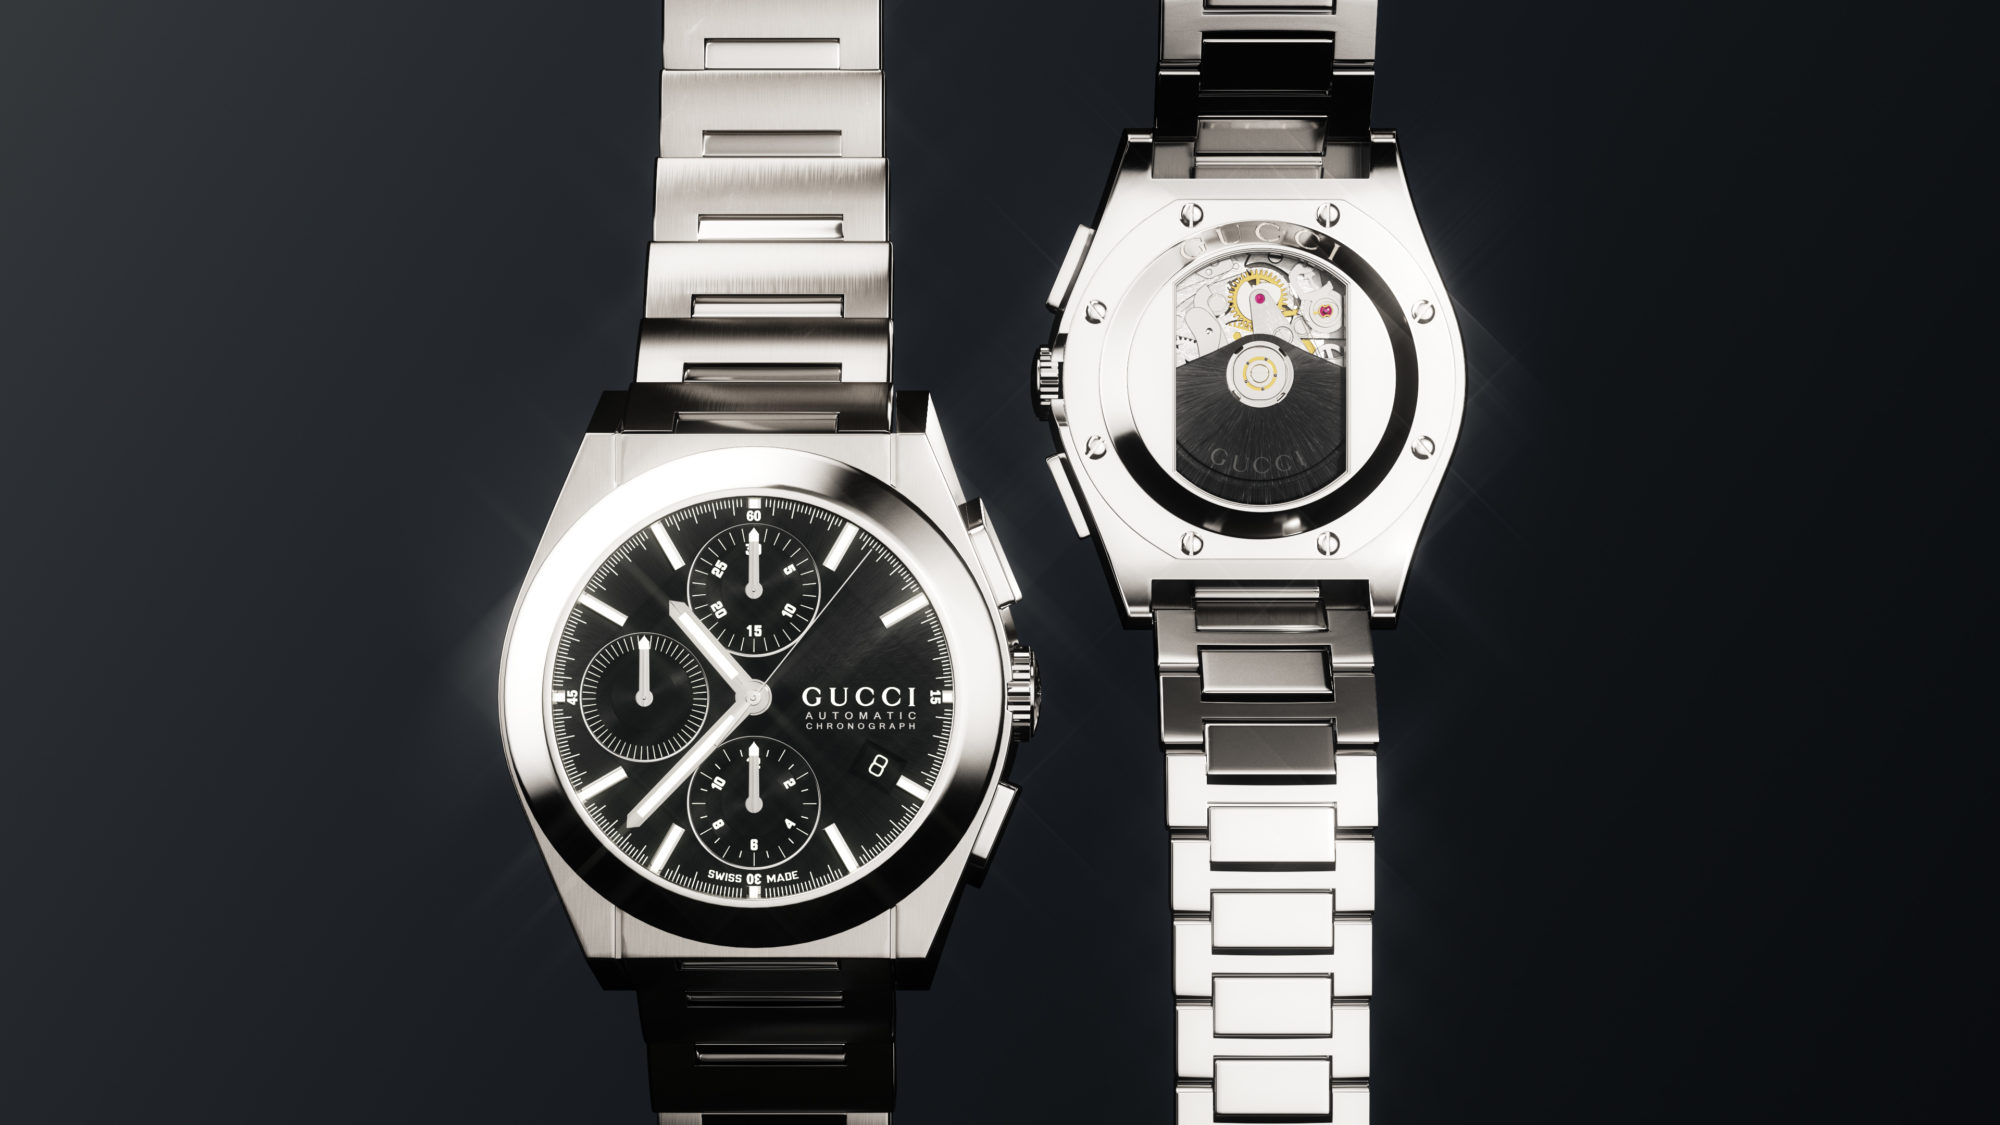 Gucci Watch Silver Black Front And Back